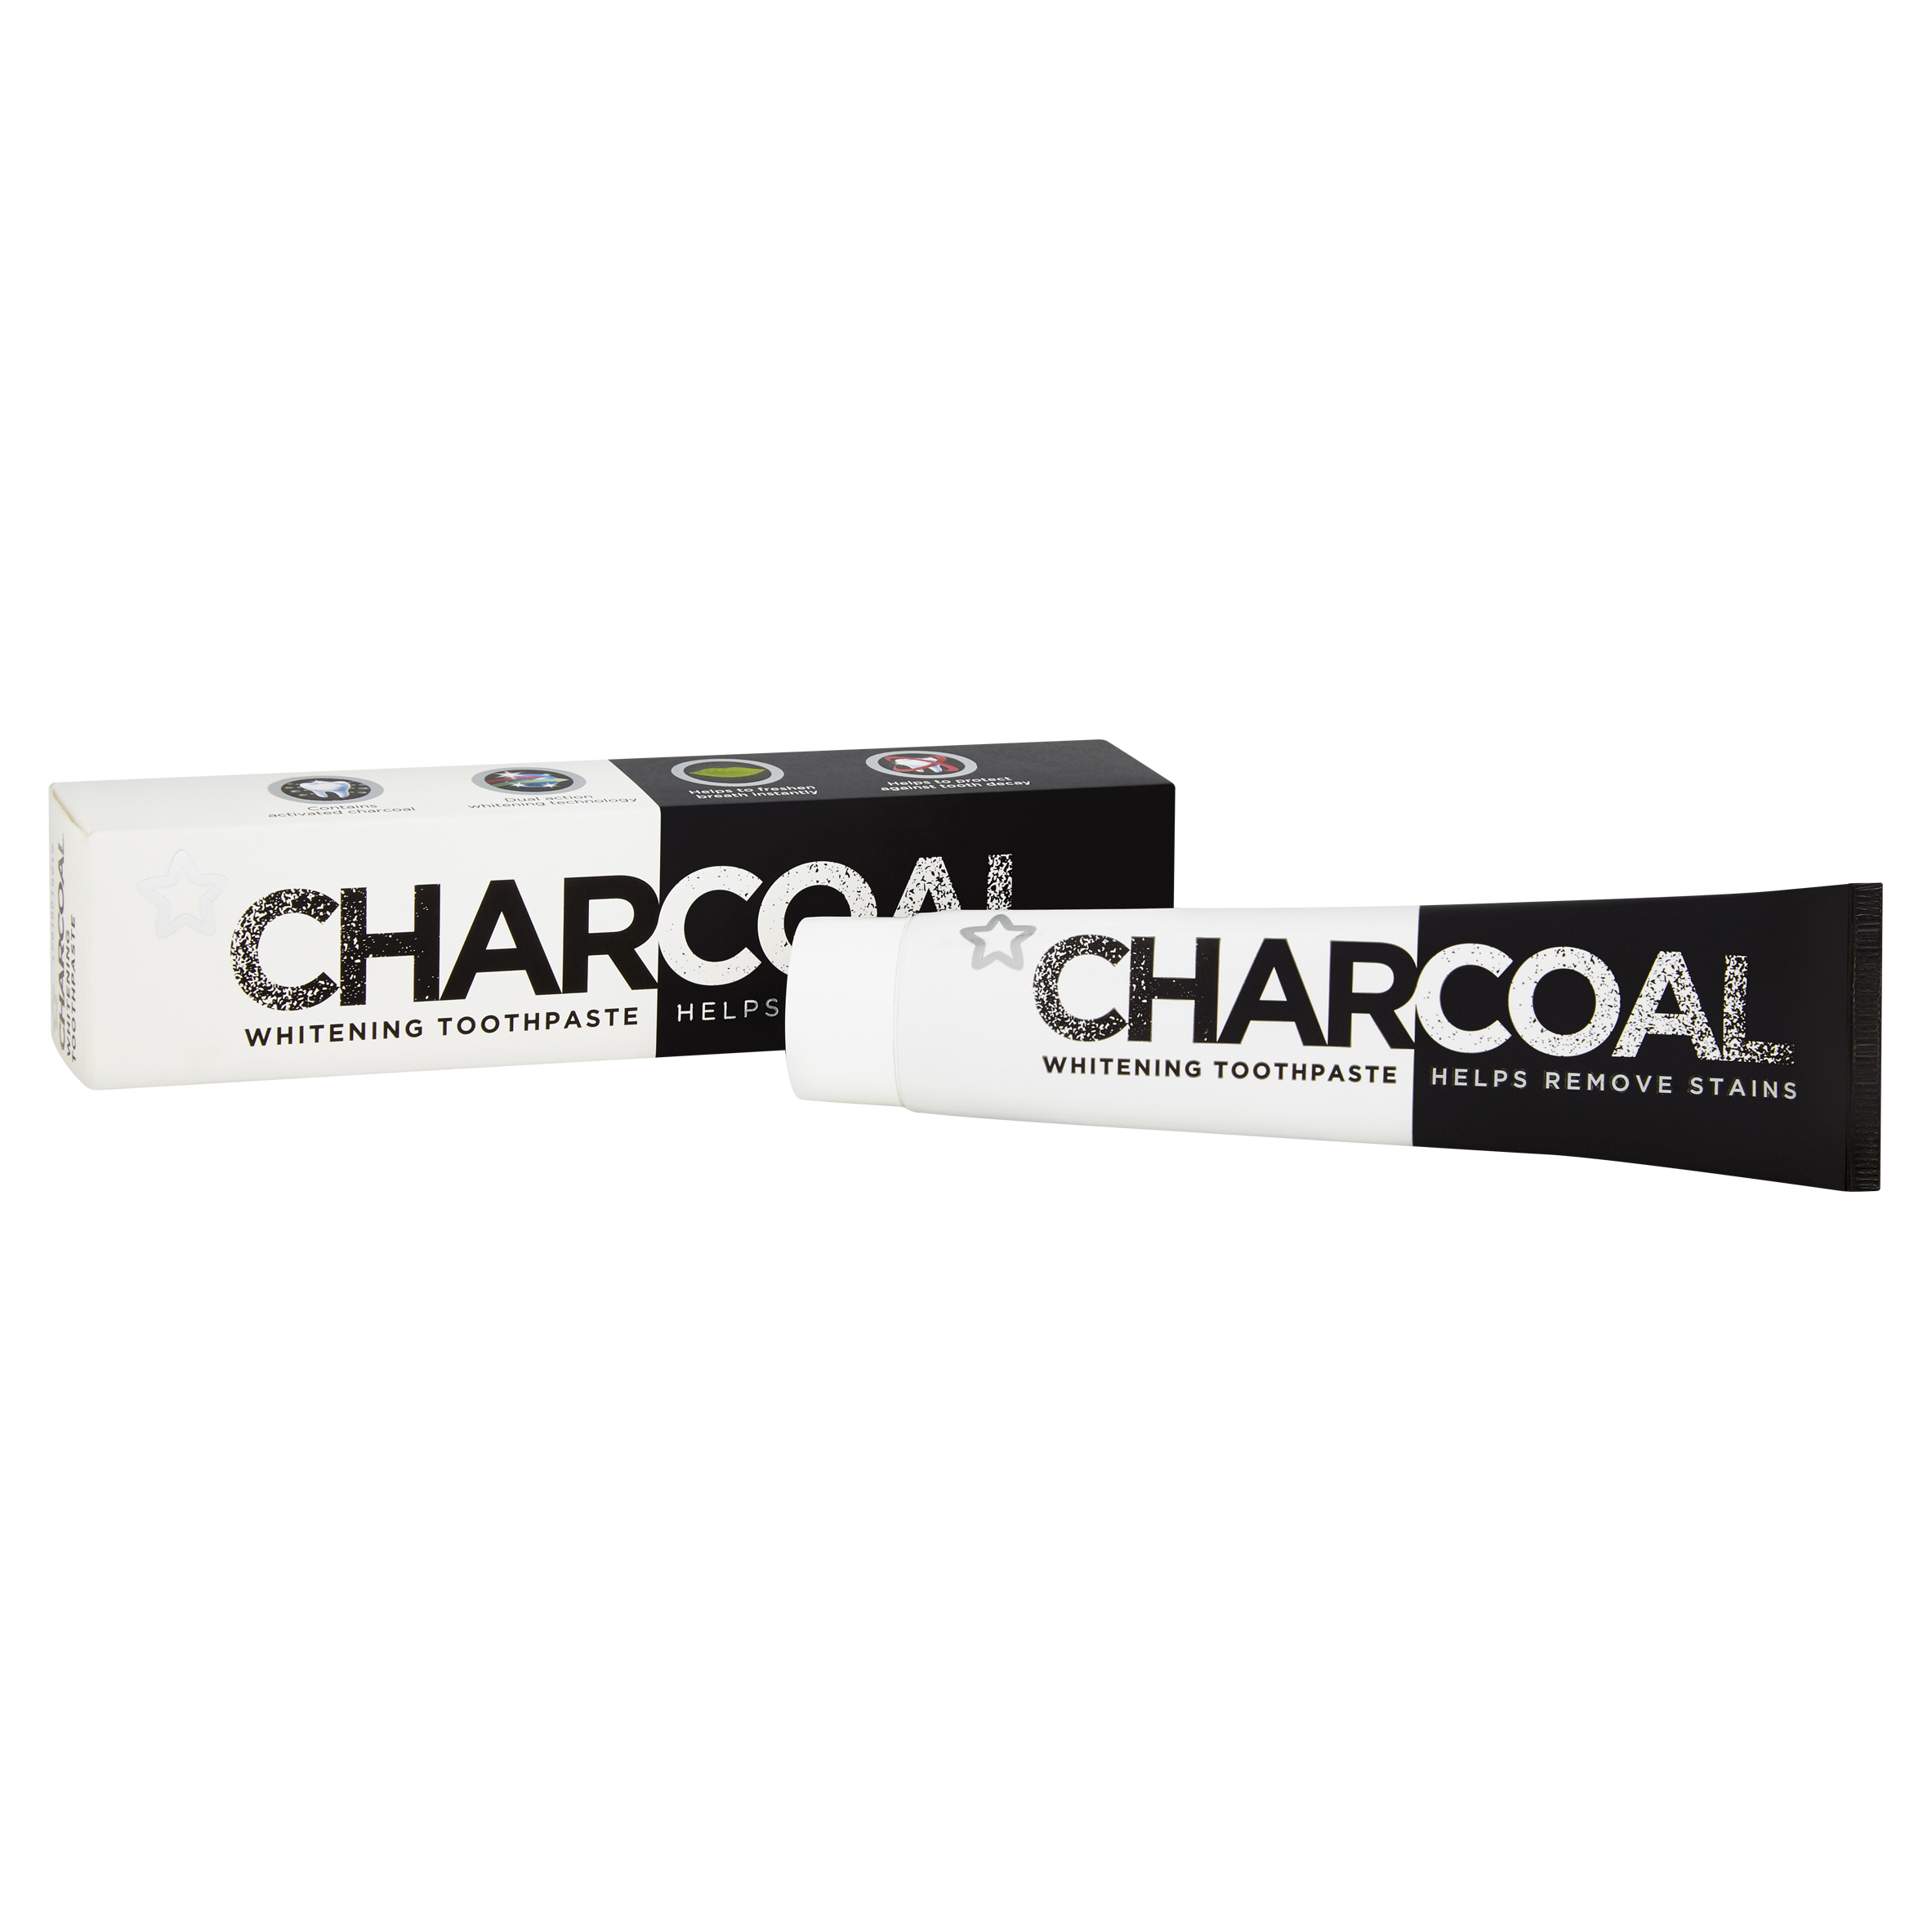 Superdrug Charcoal Whitening Toothpaste - The jury is still out on whether charcoal really does remove stains, however what it does do, is it attracts and removes toxins and bacteria. This vegan and cruelty-free toothpaste by Superdrug gets rid of plaque and surface stains, has a fresh peppermint taste, comes in full and handy mini travel size and at £2.99 is also very affordable.